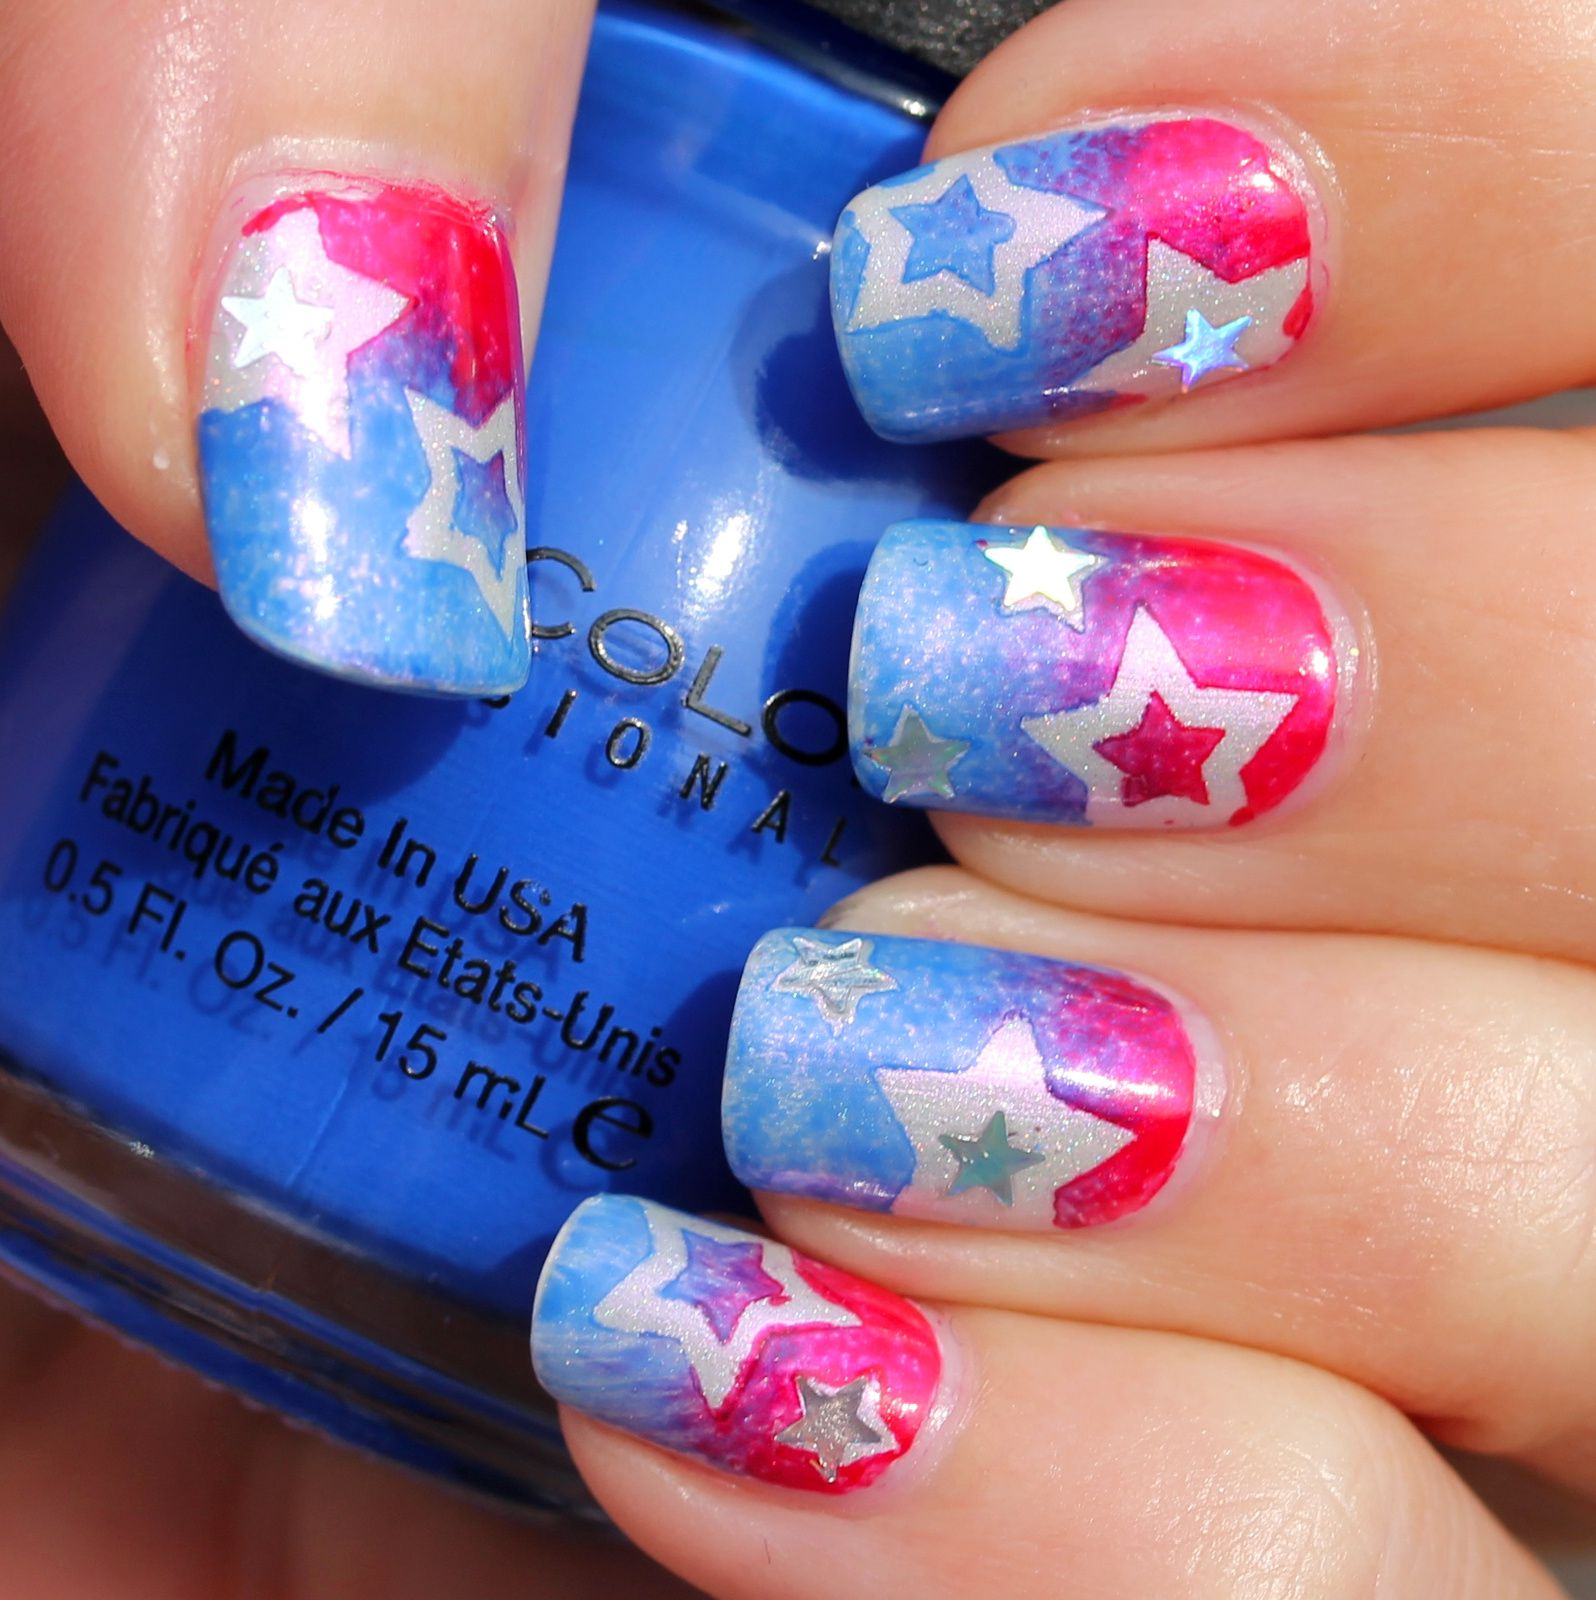 Duri Rejuvacote / Essie Marshmallow / XOXO Nail Candy Sitting on a Fluffy Cloud / Star shaped Stencils / Sinful Colors Endless Blue / Yves Rocher Prussian Red / Wet'n Wild The Star of The Show / Poshe Top Coat